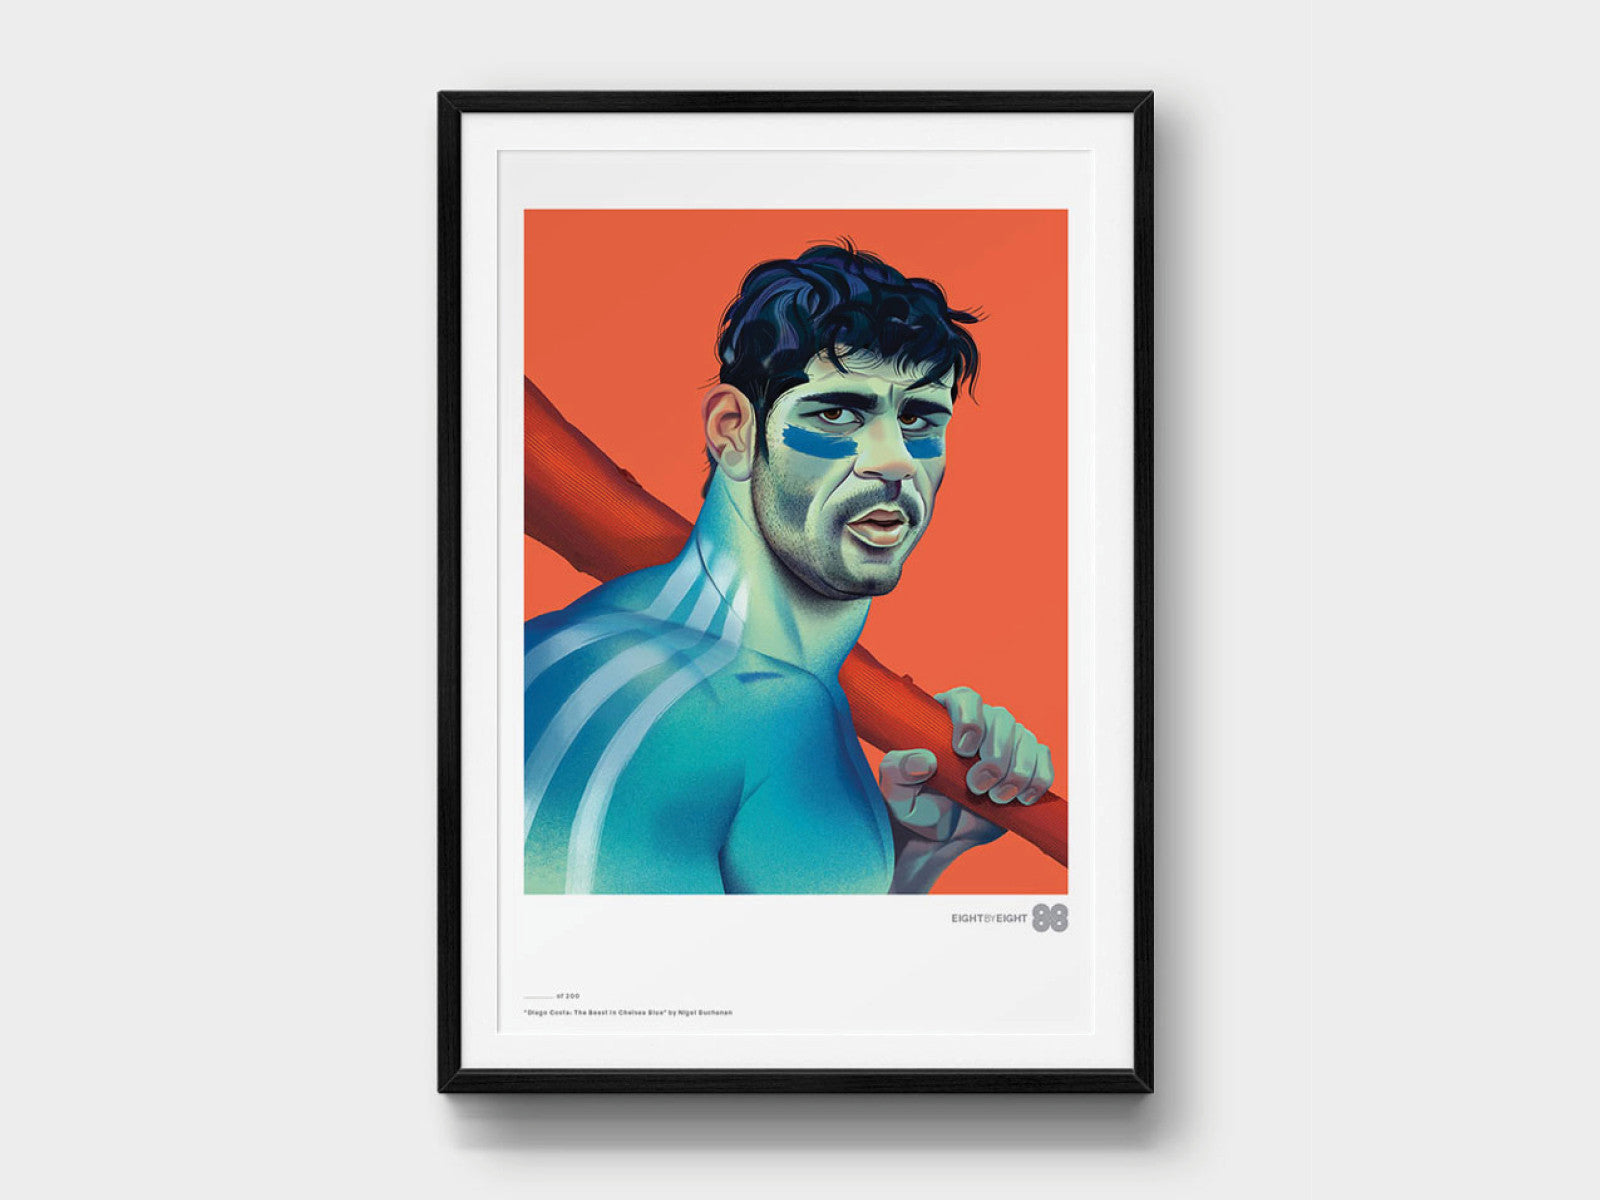 Limited-Edition Giclée Print: Diego Costa